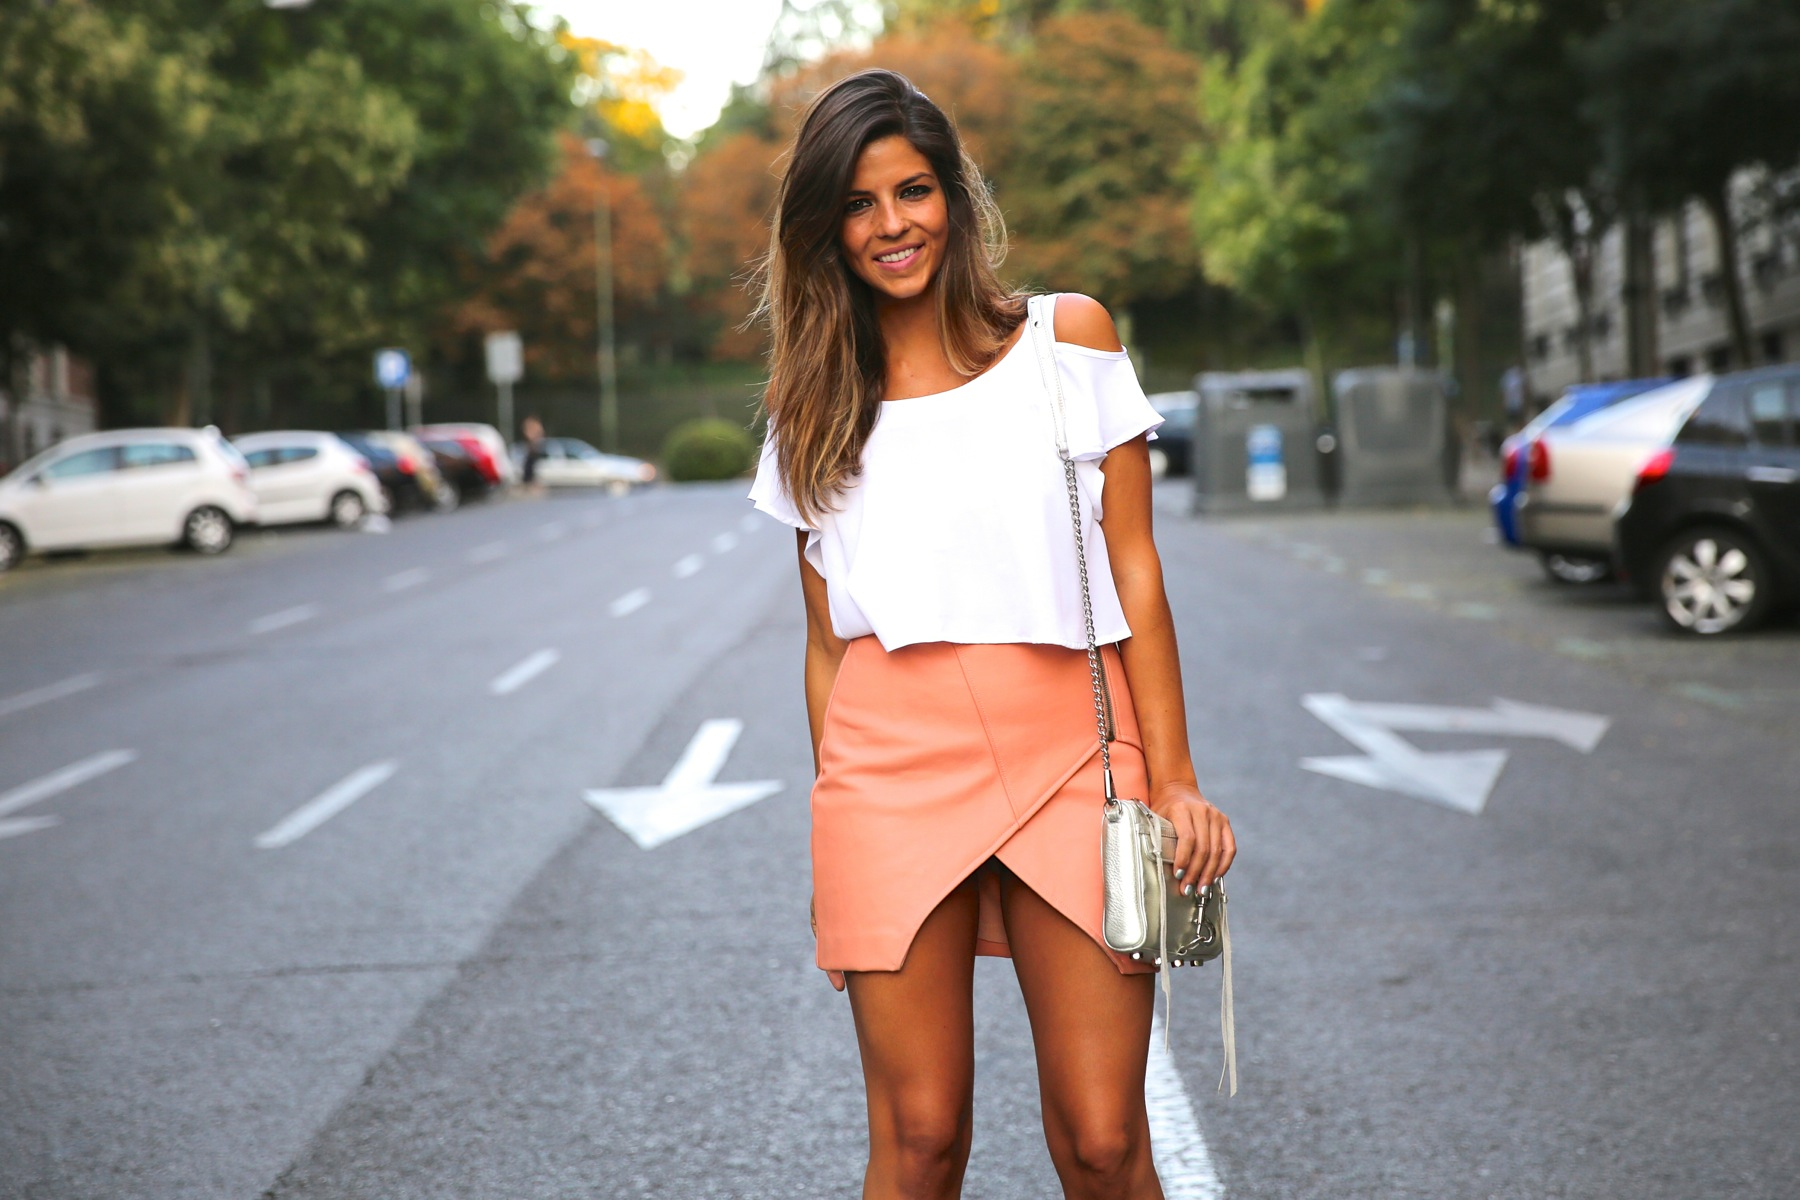 trendy_taste-look-outfit-street_style-ootd-blog-blogger-fashion_spain-moda_españa-madrid-silver_stilettos-punta_plata-estiletos-falda_coral-coral_skirt-top-5